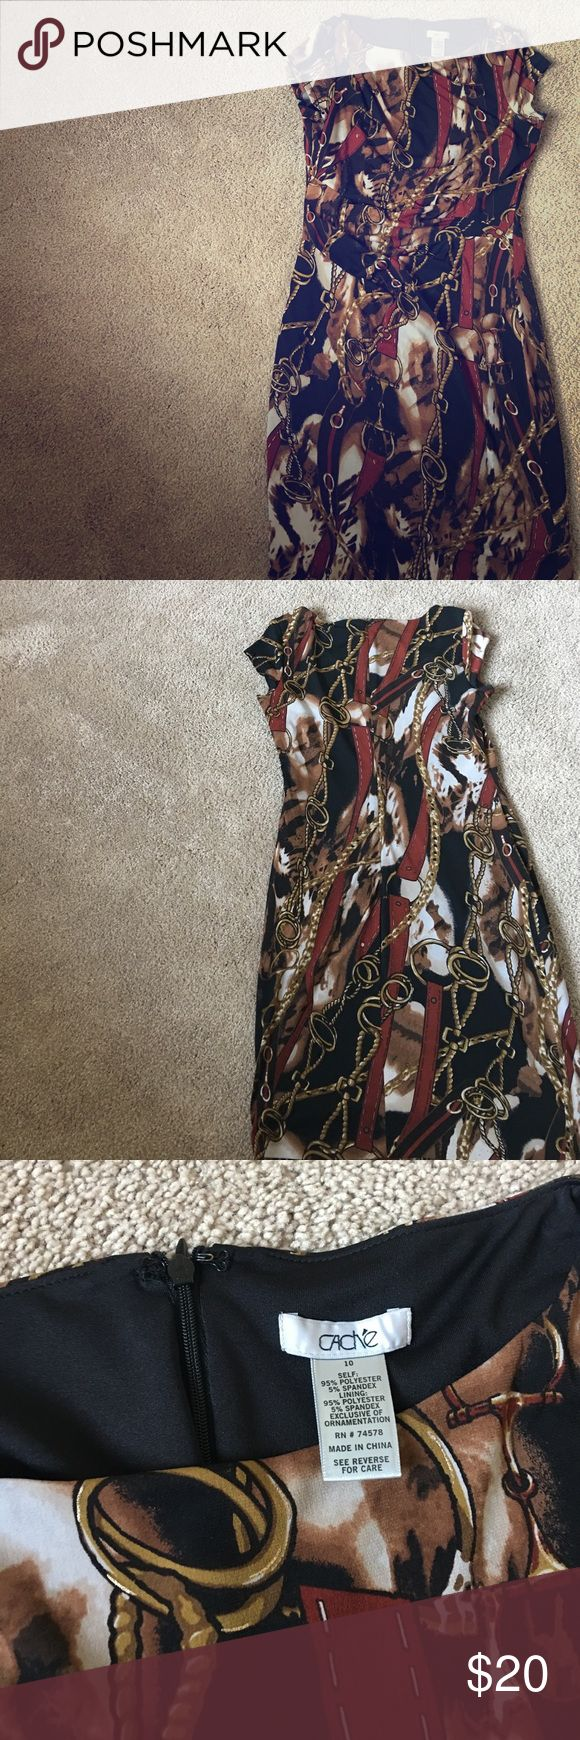 Copper, brown, and Gold CACHE fitted dress Falls at or right above the knees, fitted to the body, short sleeve dress. Perfect for dinner dates, graduations, or any special event! Cache Dresses